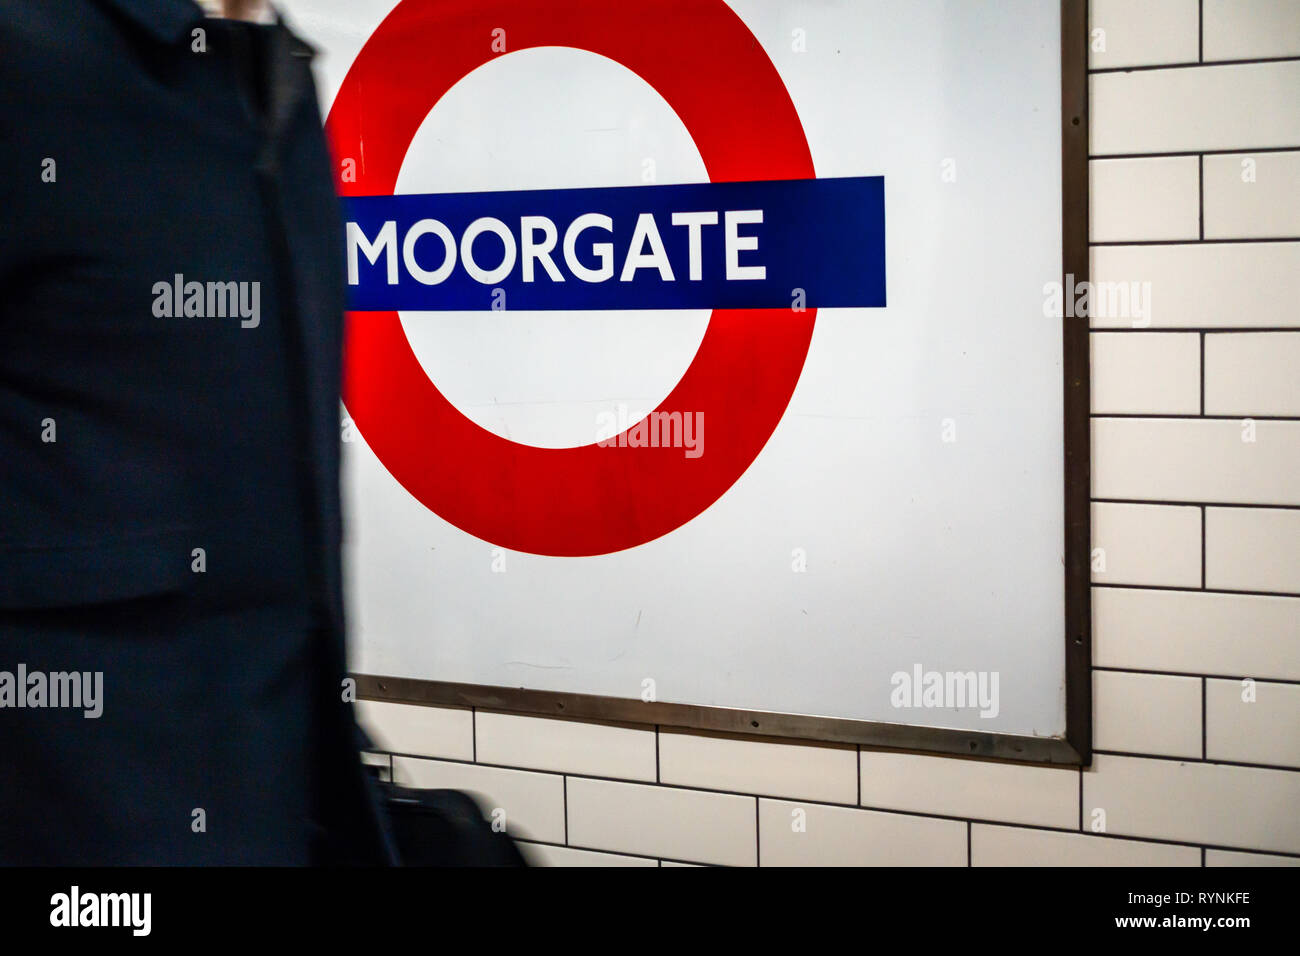 Commuter waking pass the Iconic circular London Tube sign on the underground platform at Moorgate, London - Stock Image